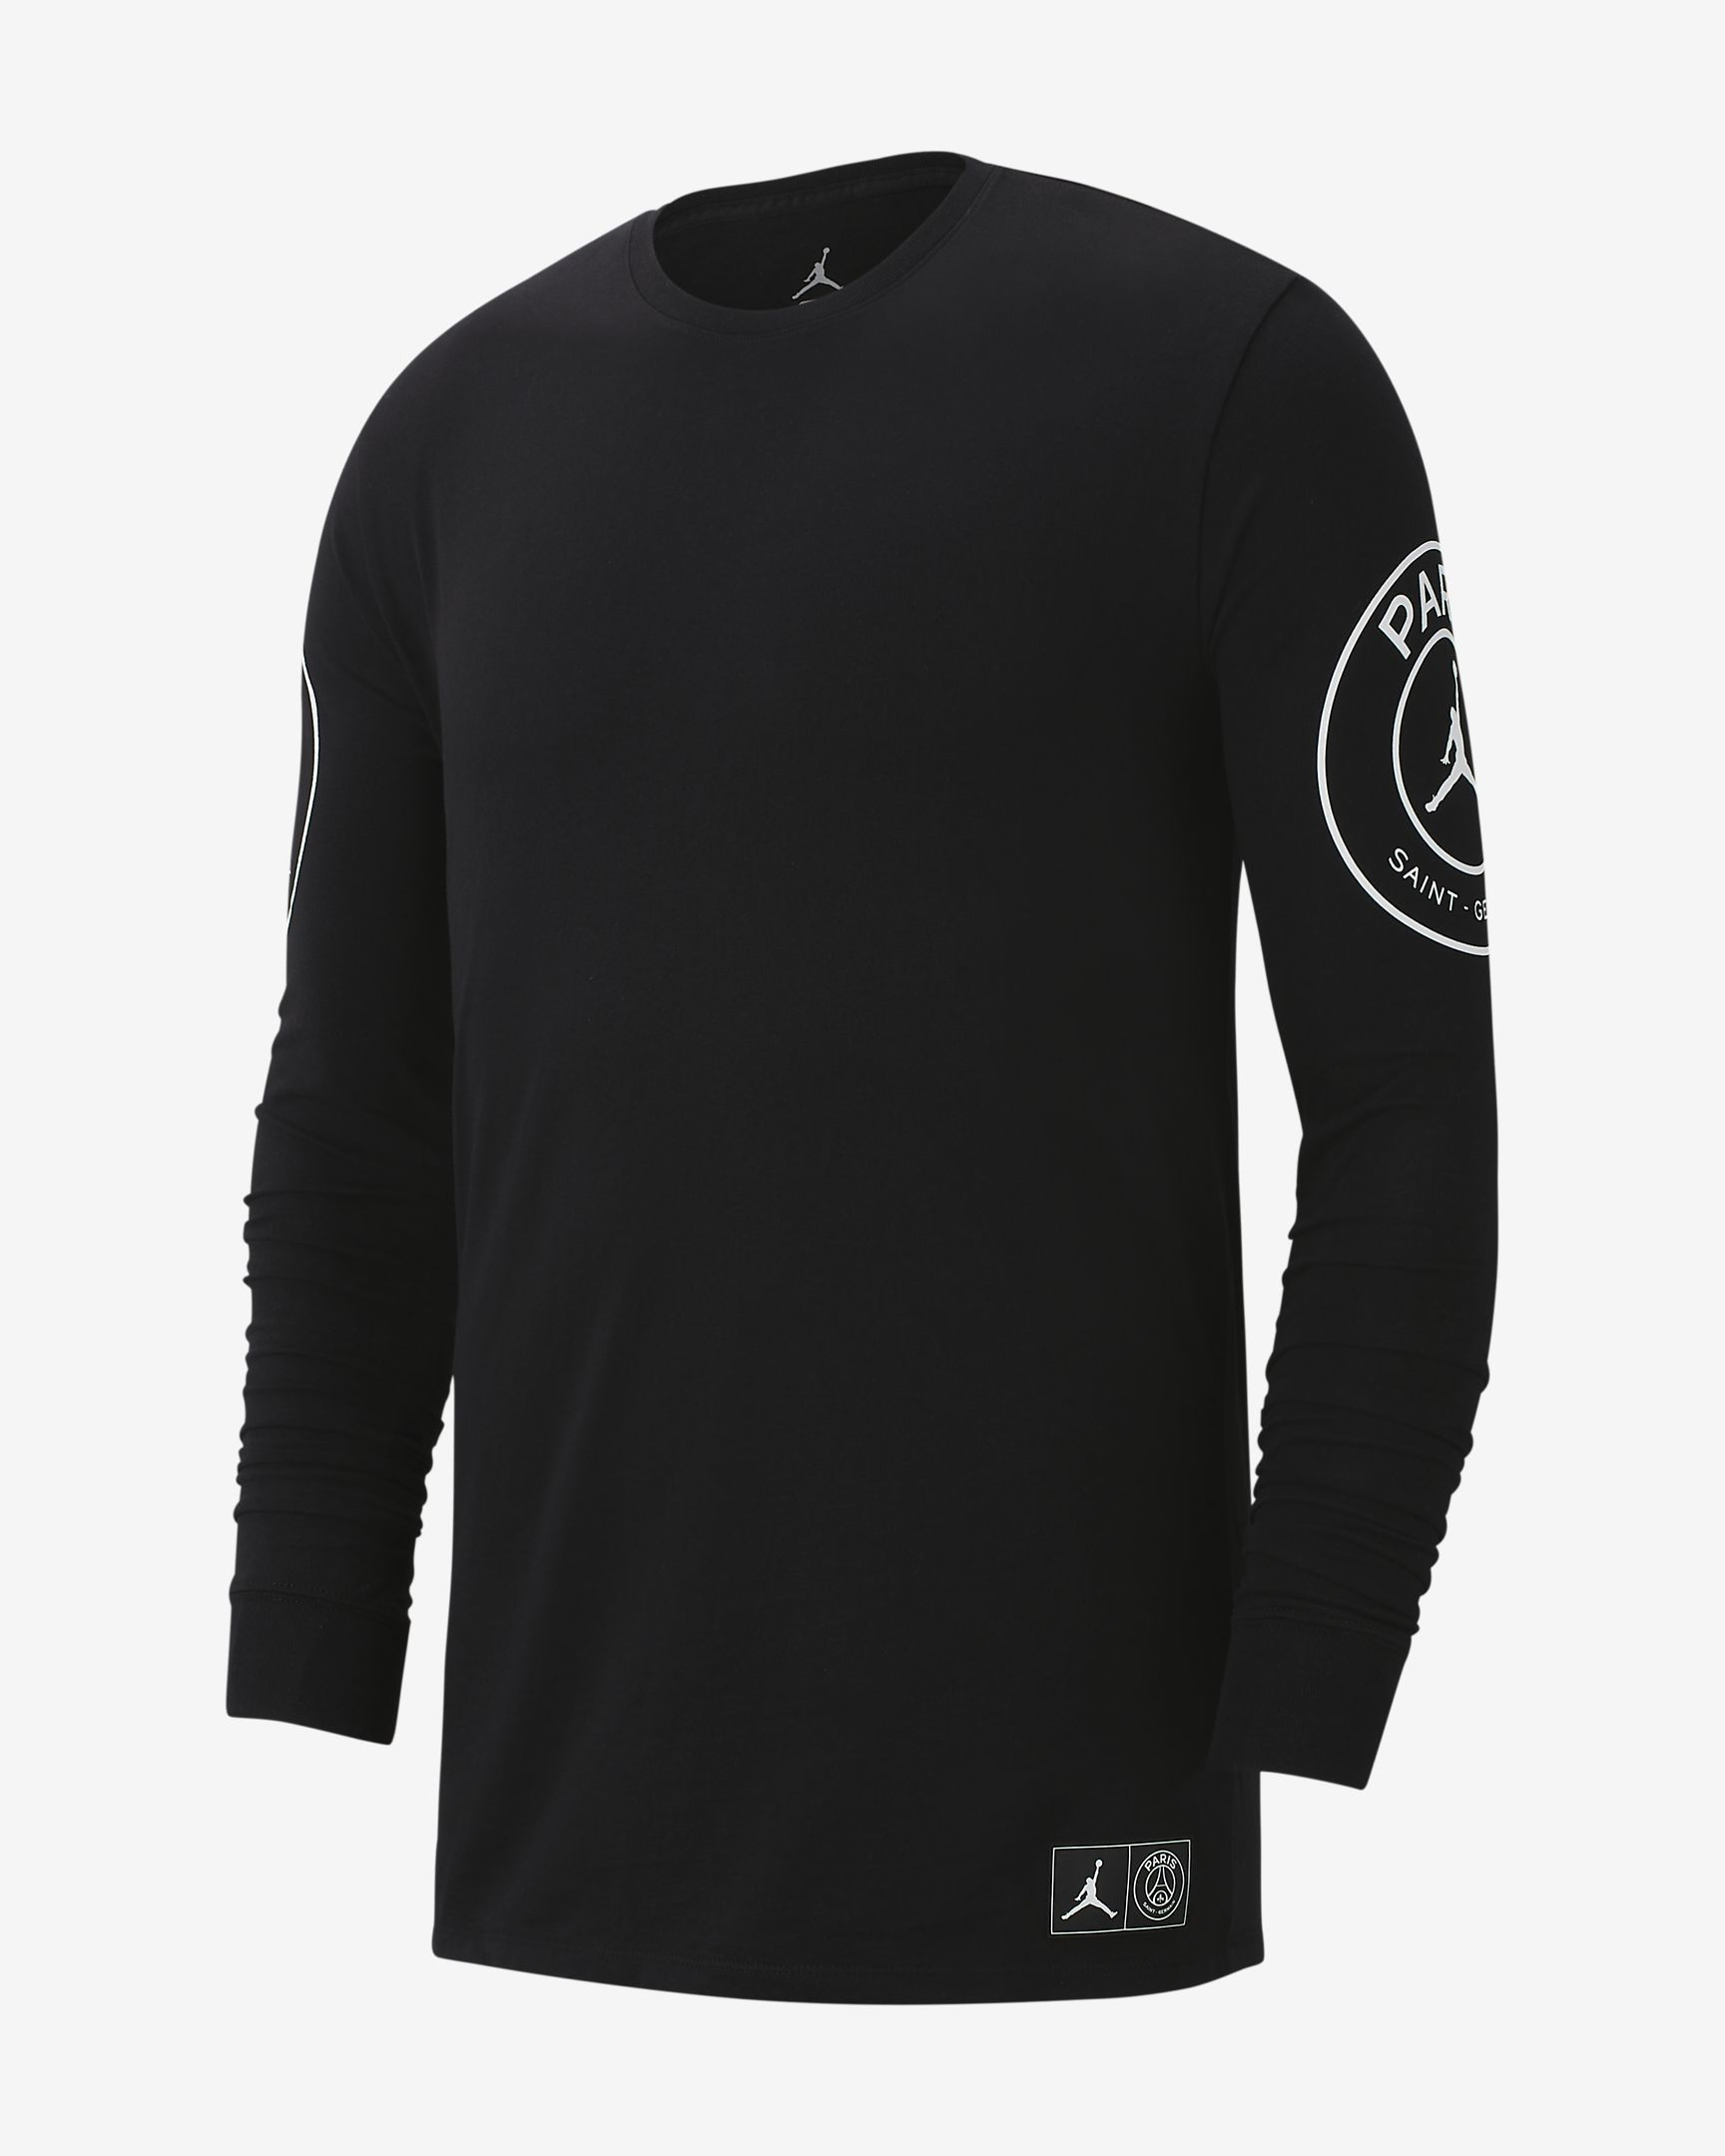 893d3314b65 Paris Saint Germain x Jordan - long sleeve tee | Avenue Attire in ...